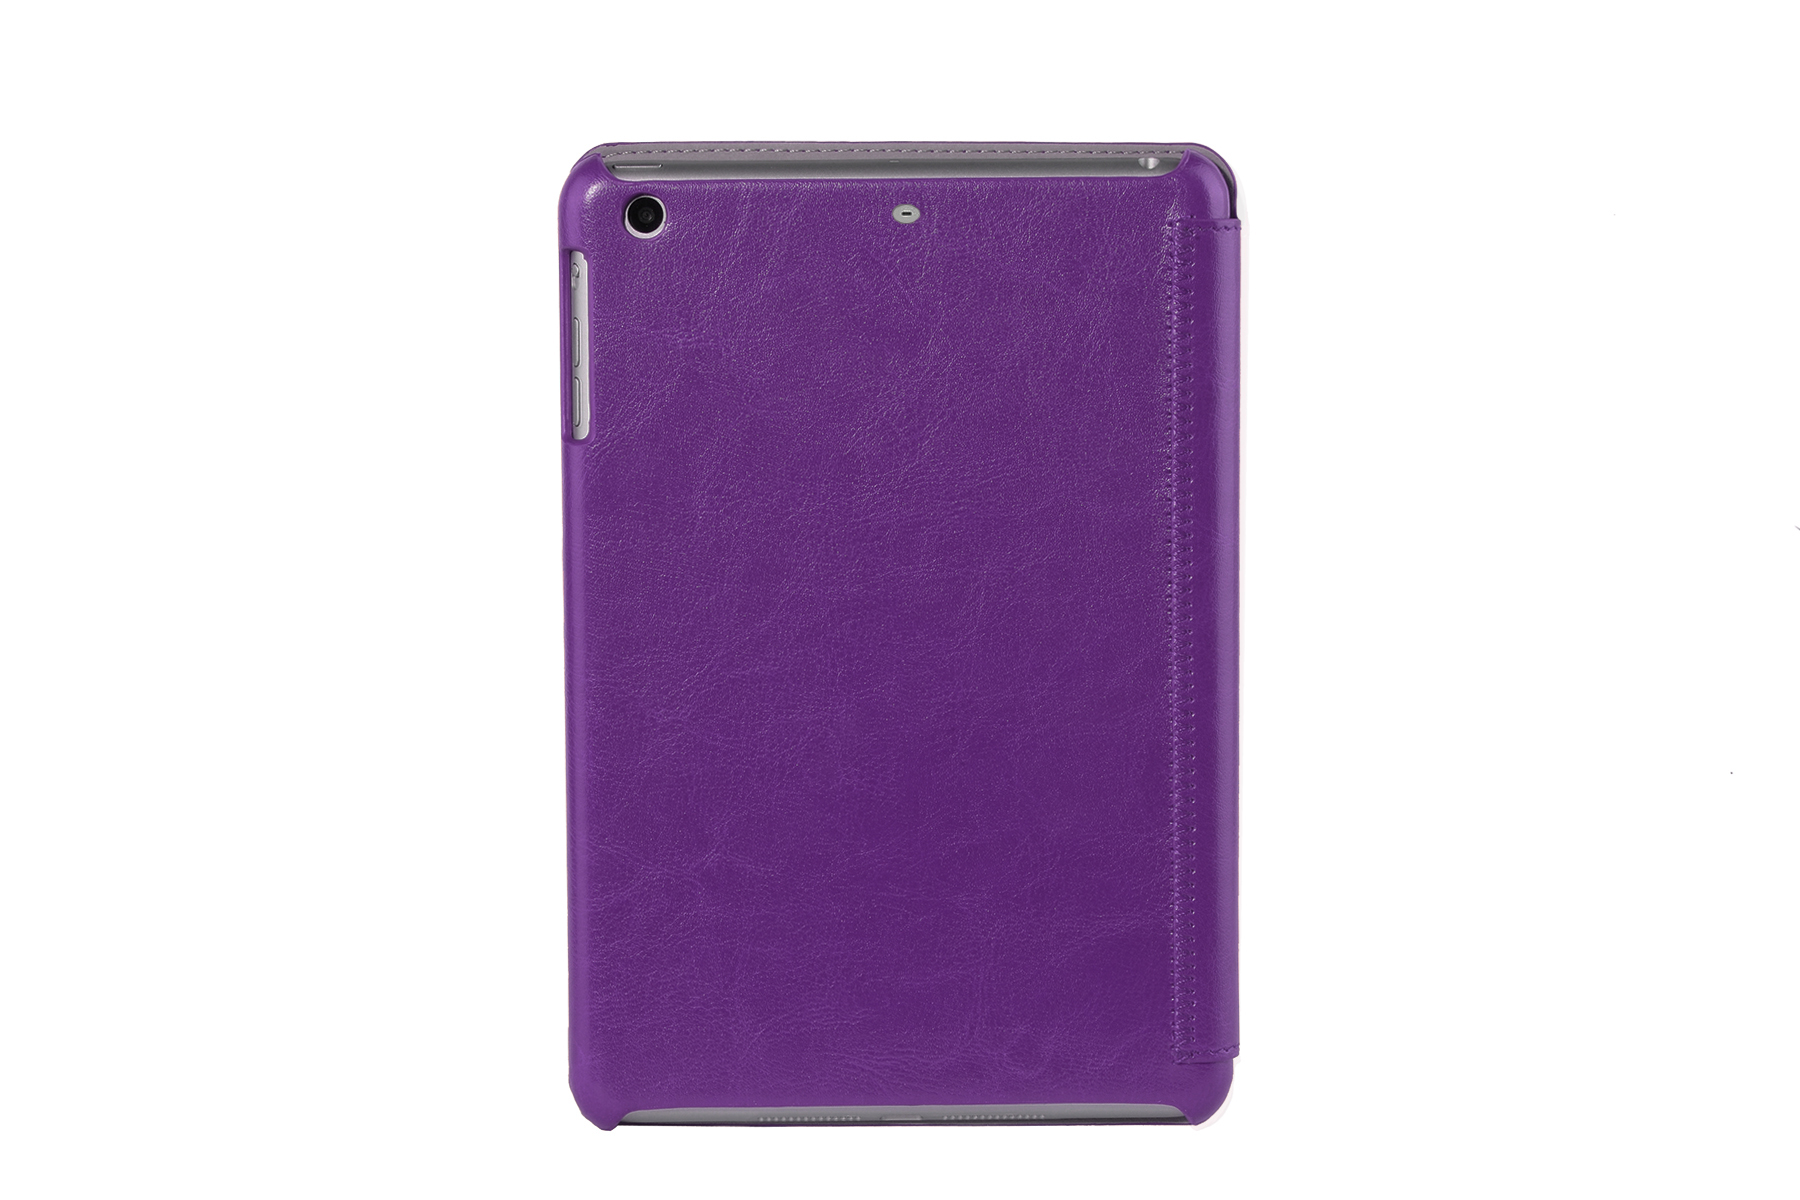 Чехол для Apple iPad mini Retina G-Case Slim Premium, фиолетовый